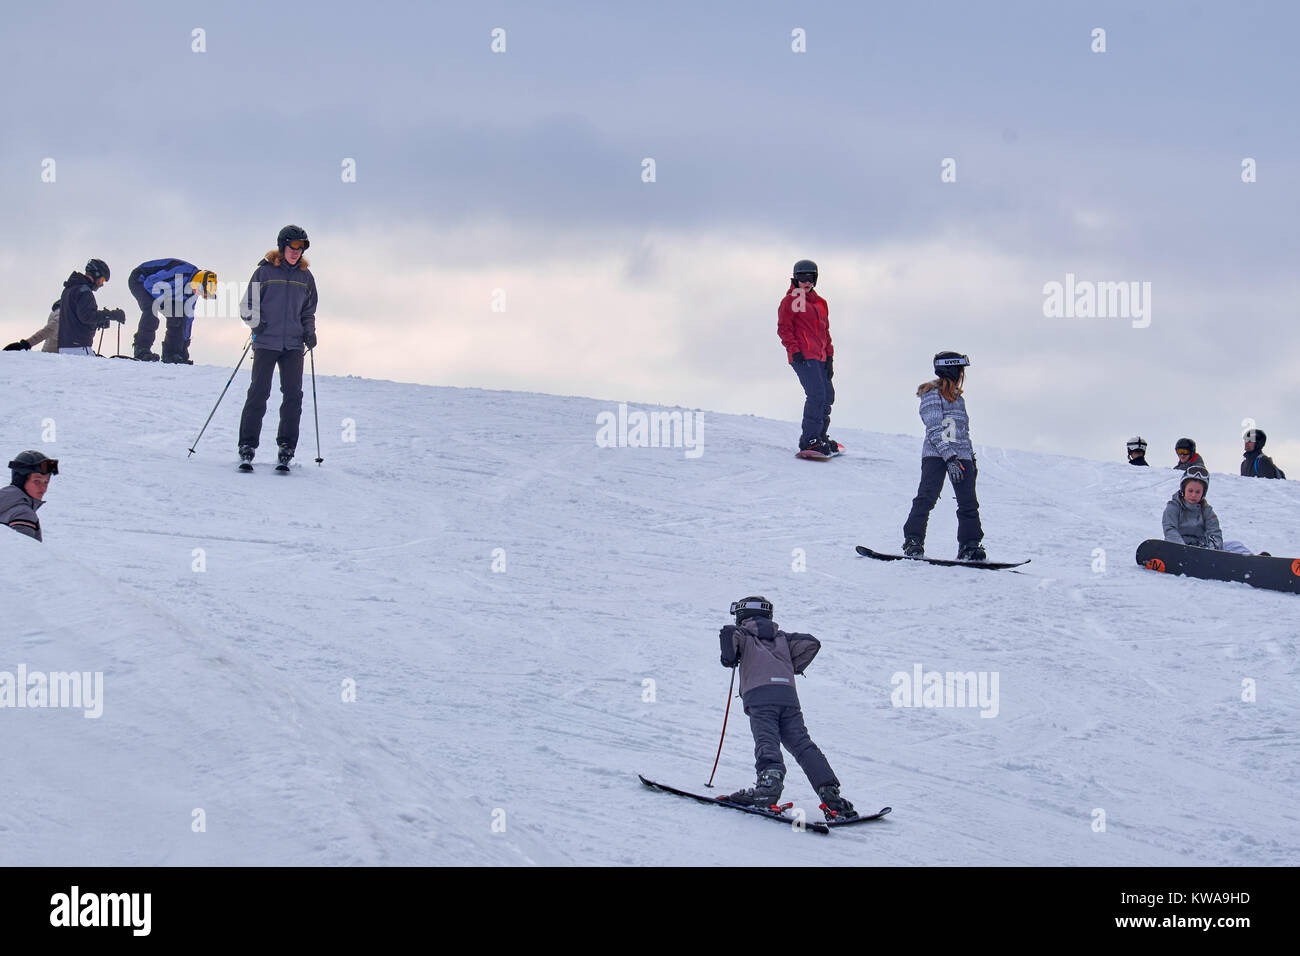 WINTERBERG, GERMANY - FEBRUARY 16, 2017: Group of young skiers on skis and snowboards at Ski Carousel Winterberg - Stock Image